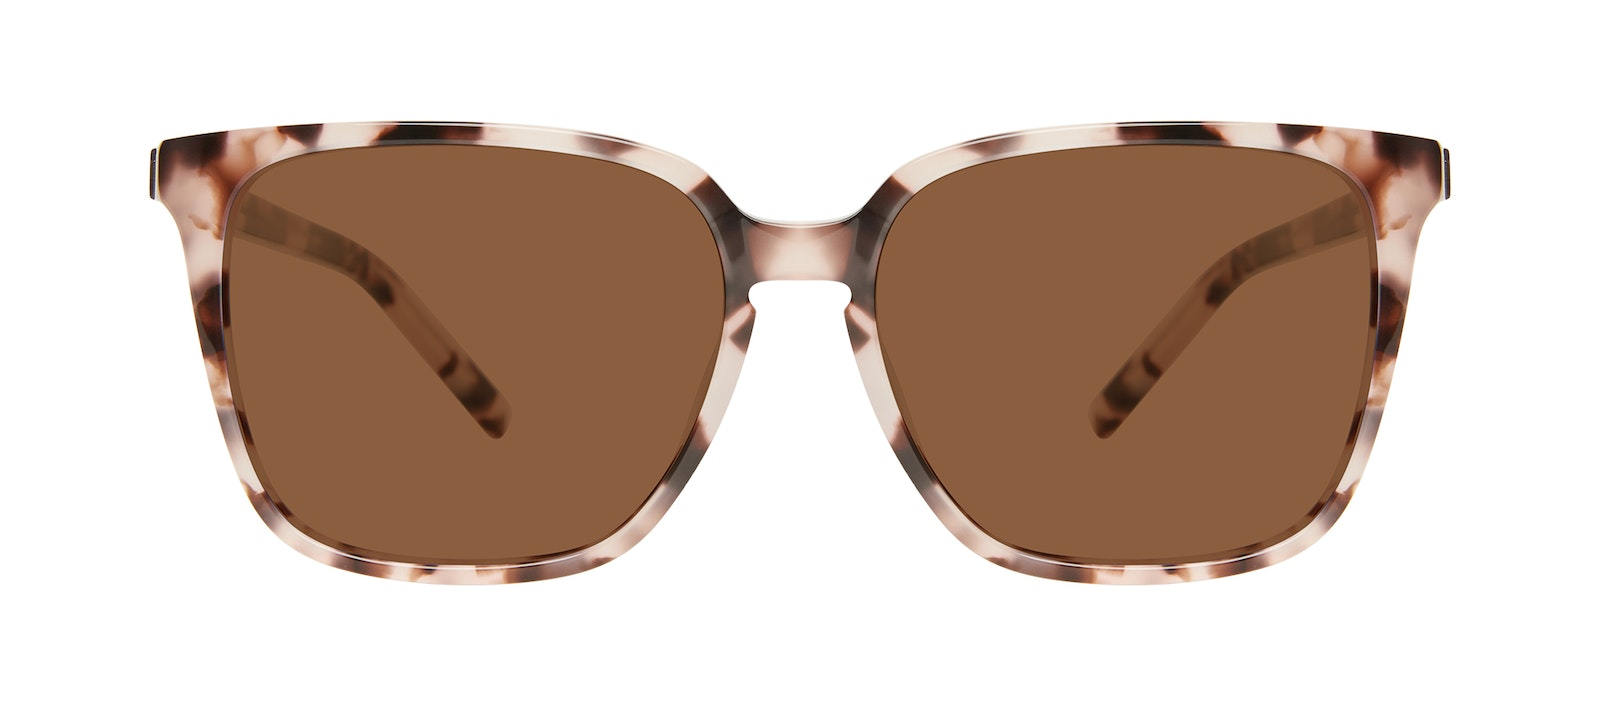 Affordable Fashion Glasses Square Sunglasses Women Runway L Marbled Pink Front